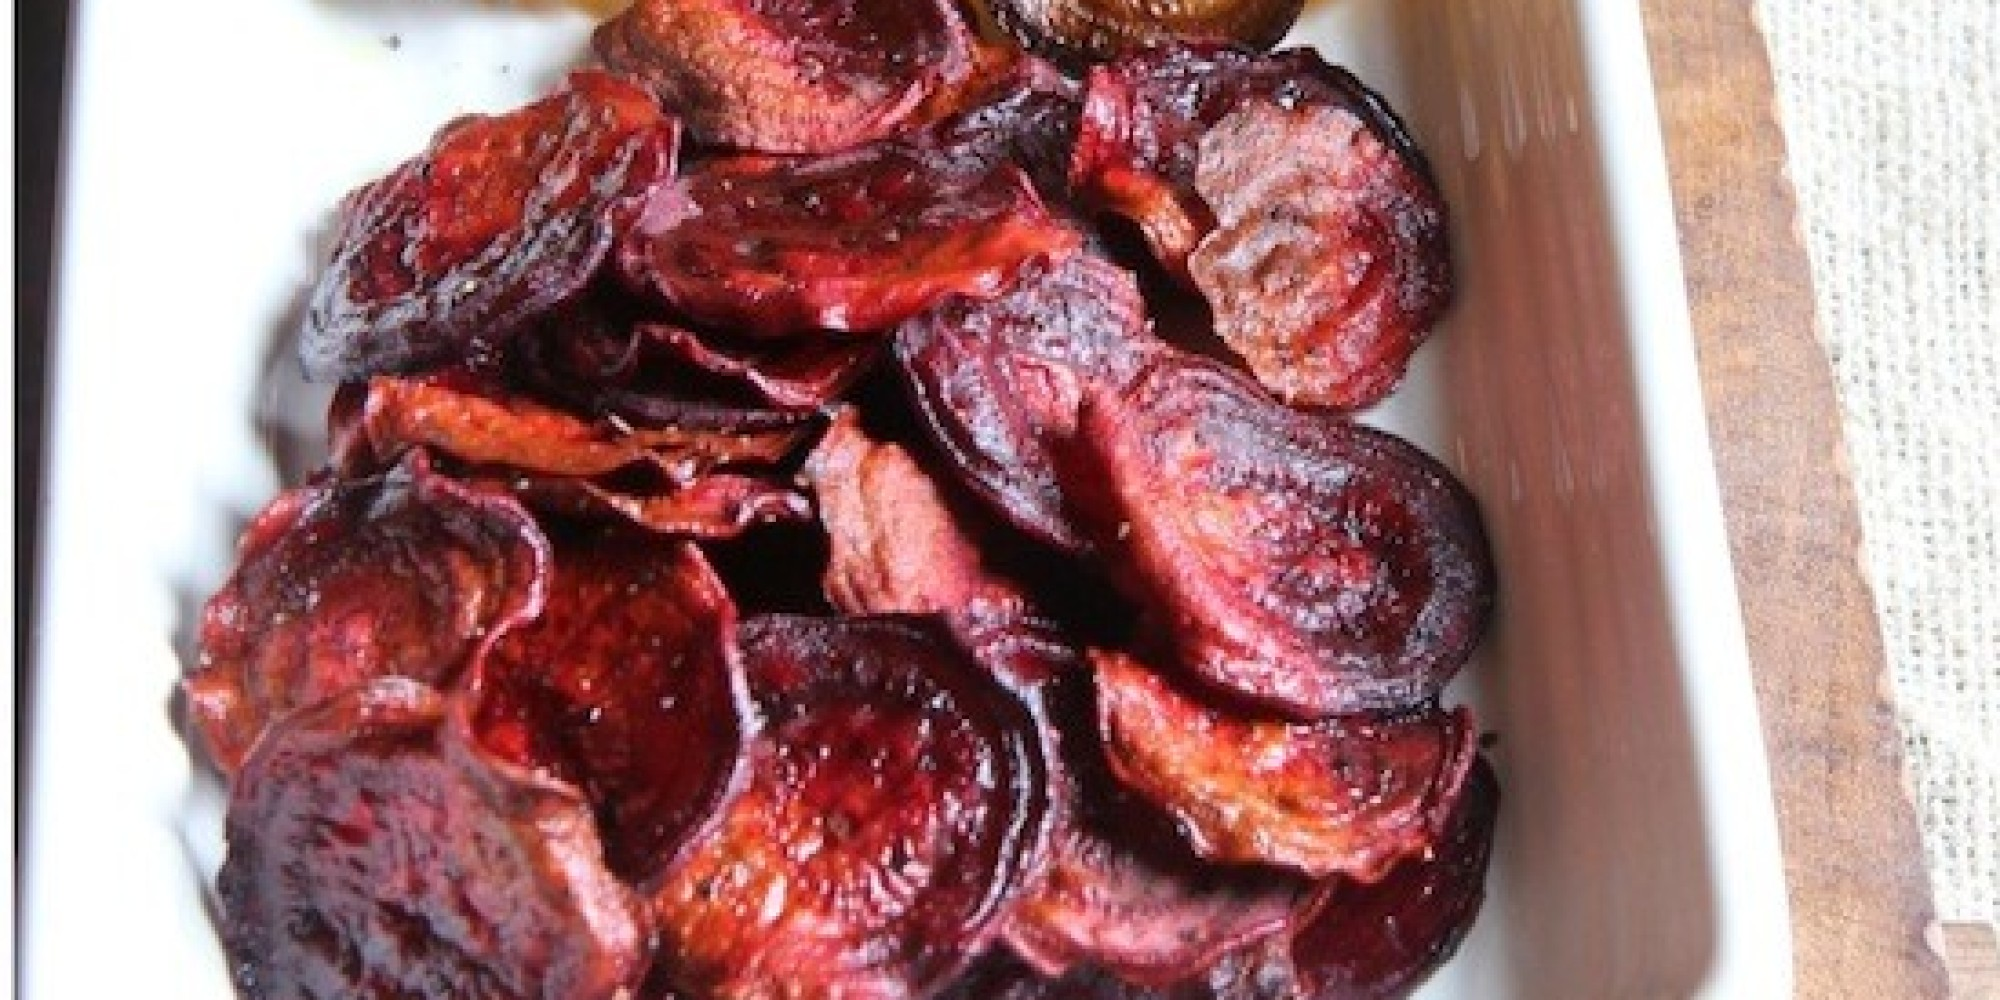 Beet Recipes: Salads, Snacks And Juice Recipes To Try This ...